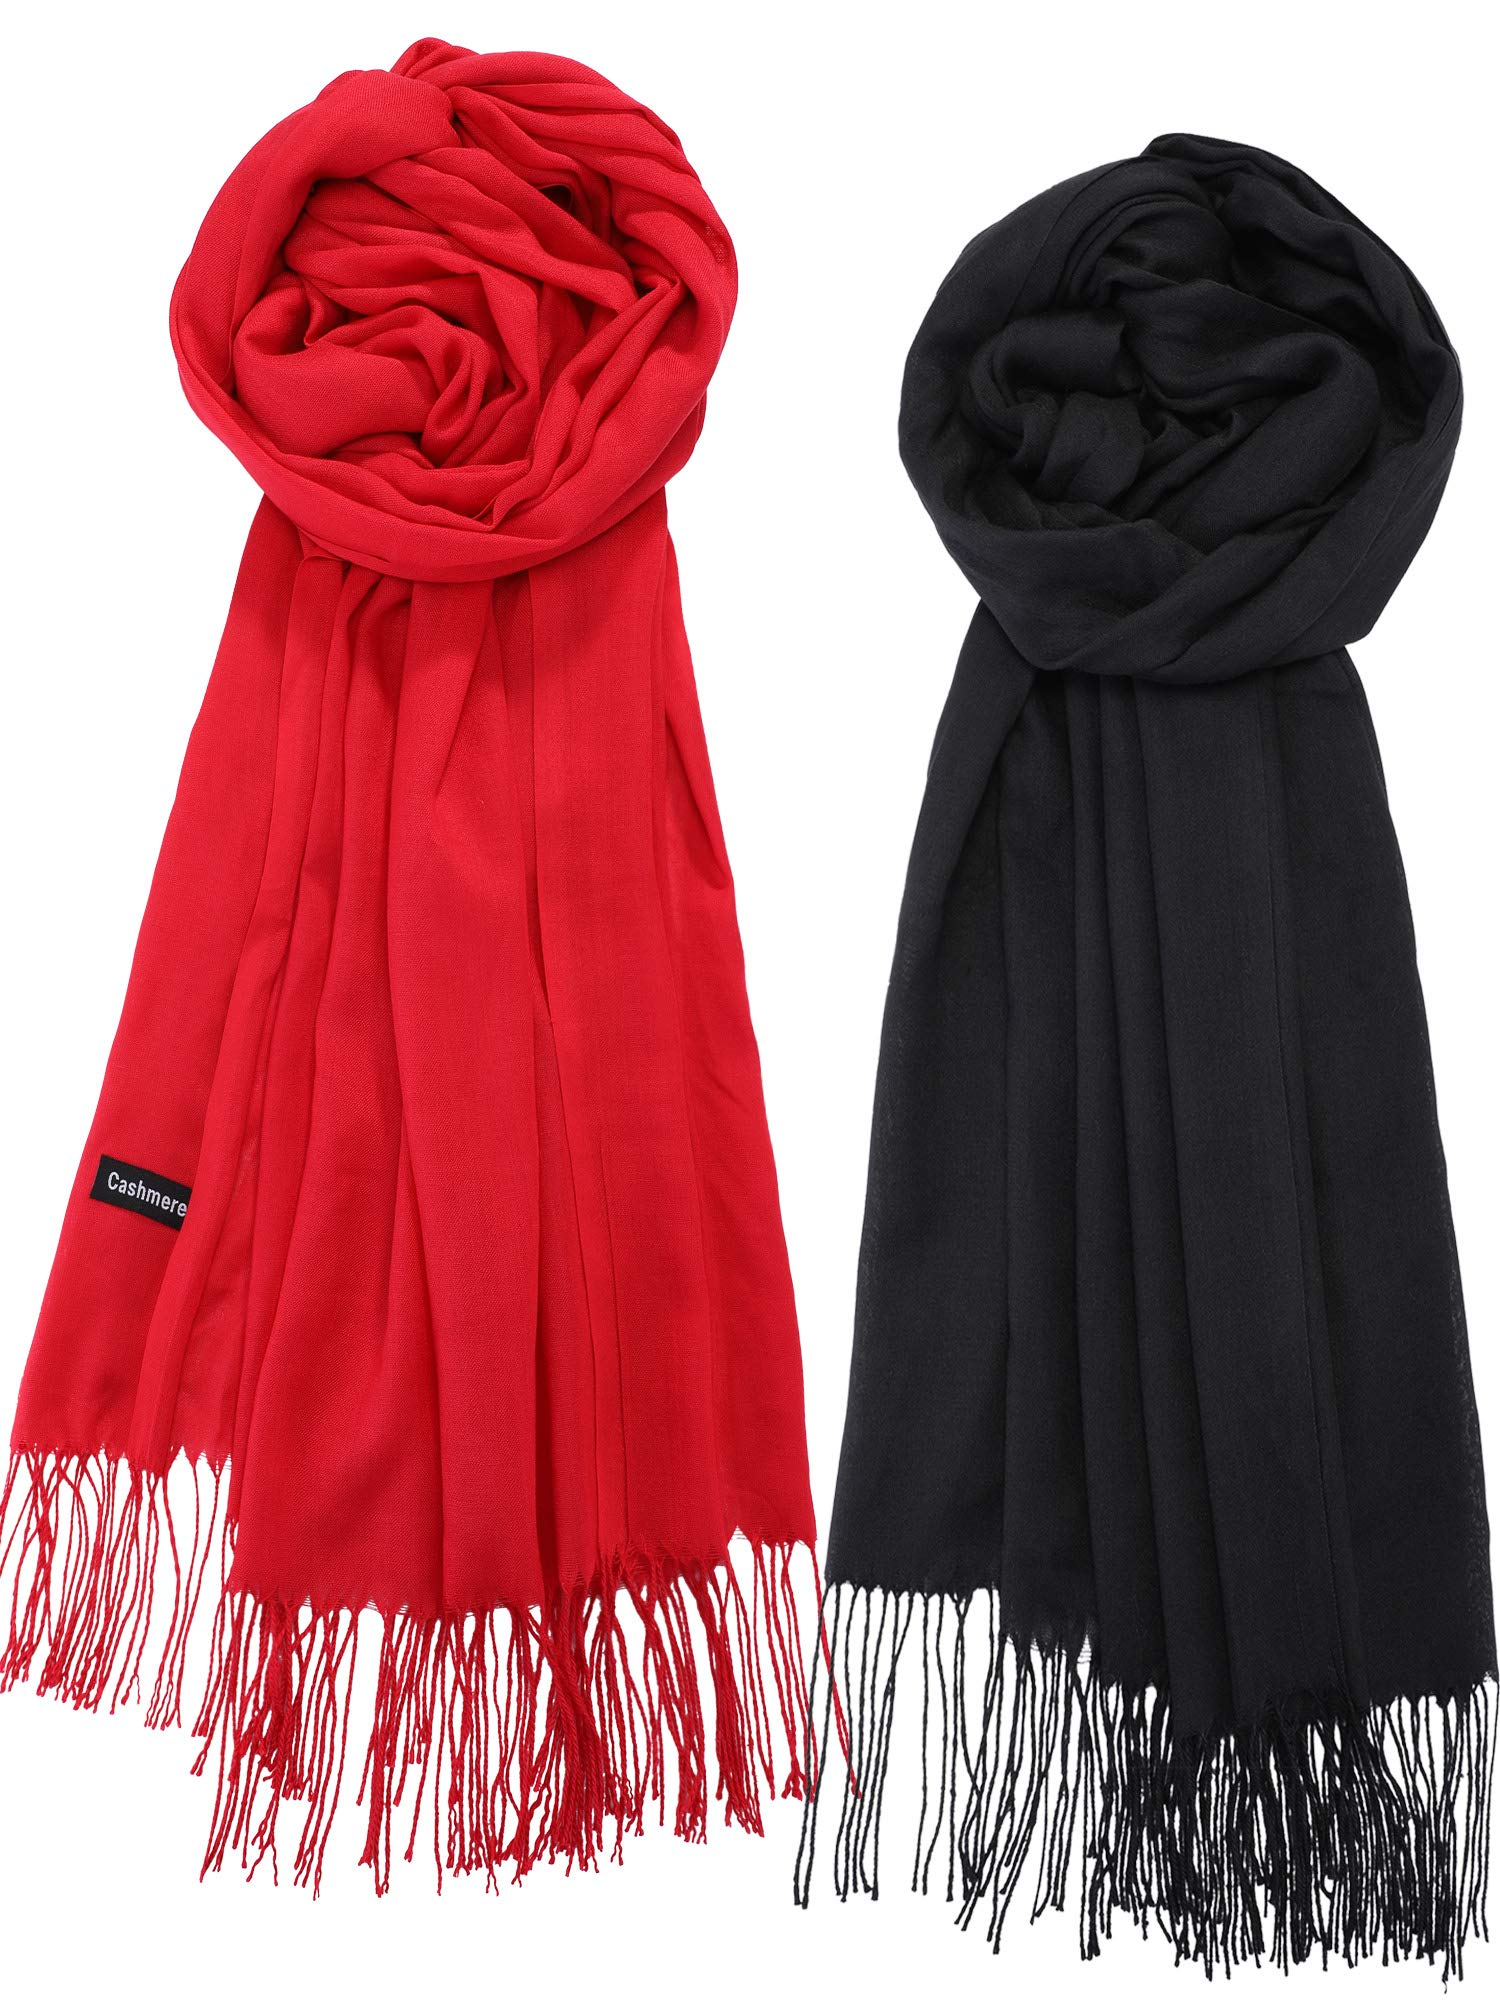 eBoot 2 Pieces Women's Soft Silky Scarf Long Wrap Shawl Cotton Scarves in Solid Color (Black and Red)